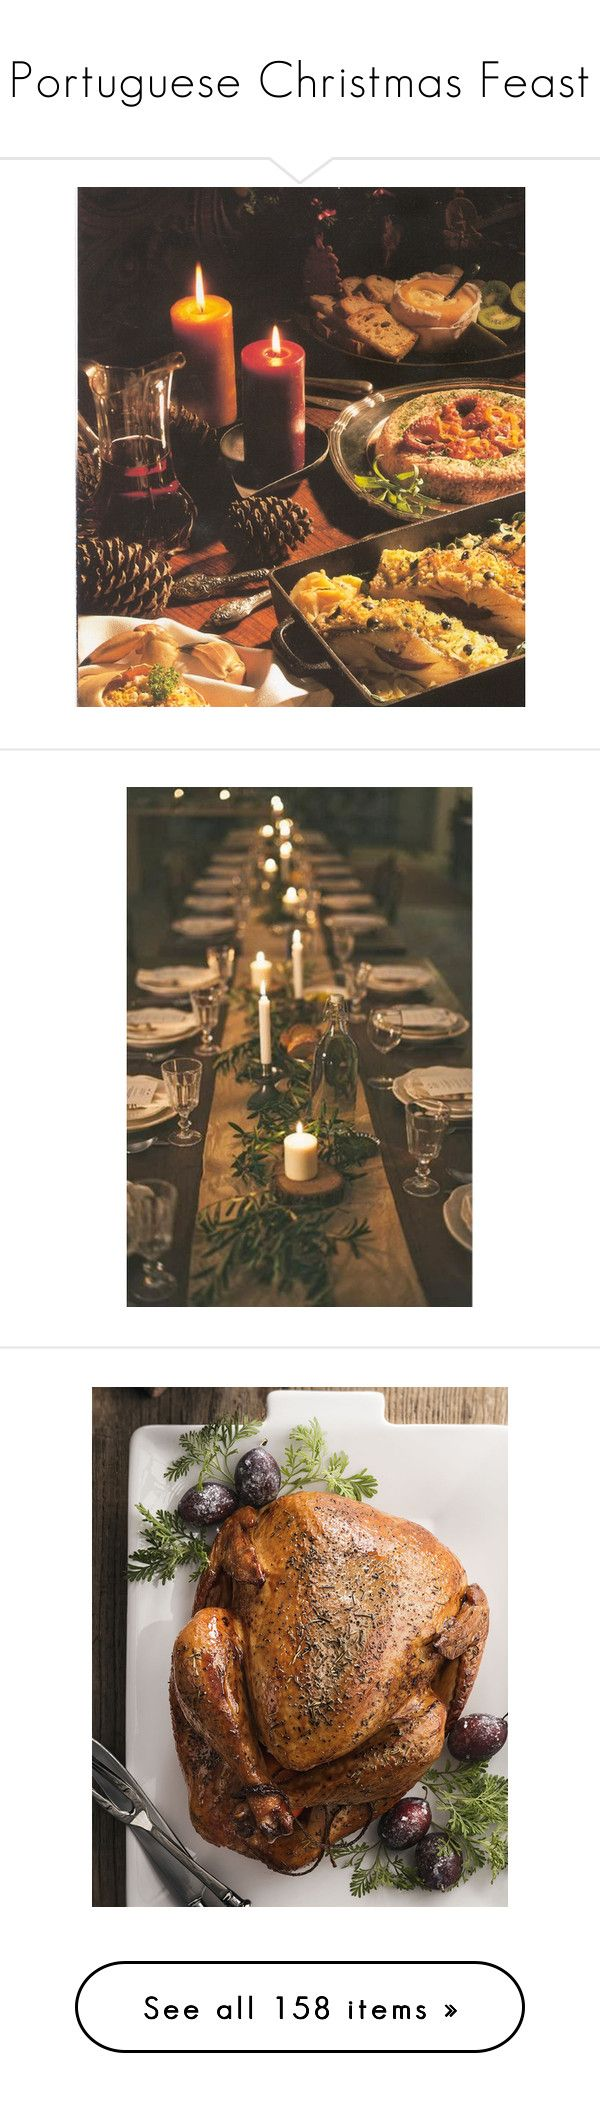 """""""Portuguese Christmas Feast"""" by r-maggie ❤ liked on Polyvore featuring backgrounds, christmas, home, kitchen & dining, light brown, home decor, holiday decorations, food, background food/drink and photos"""